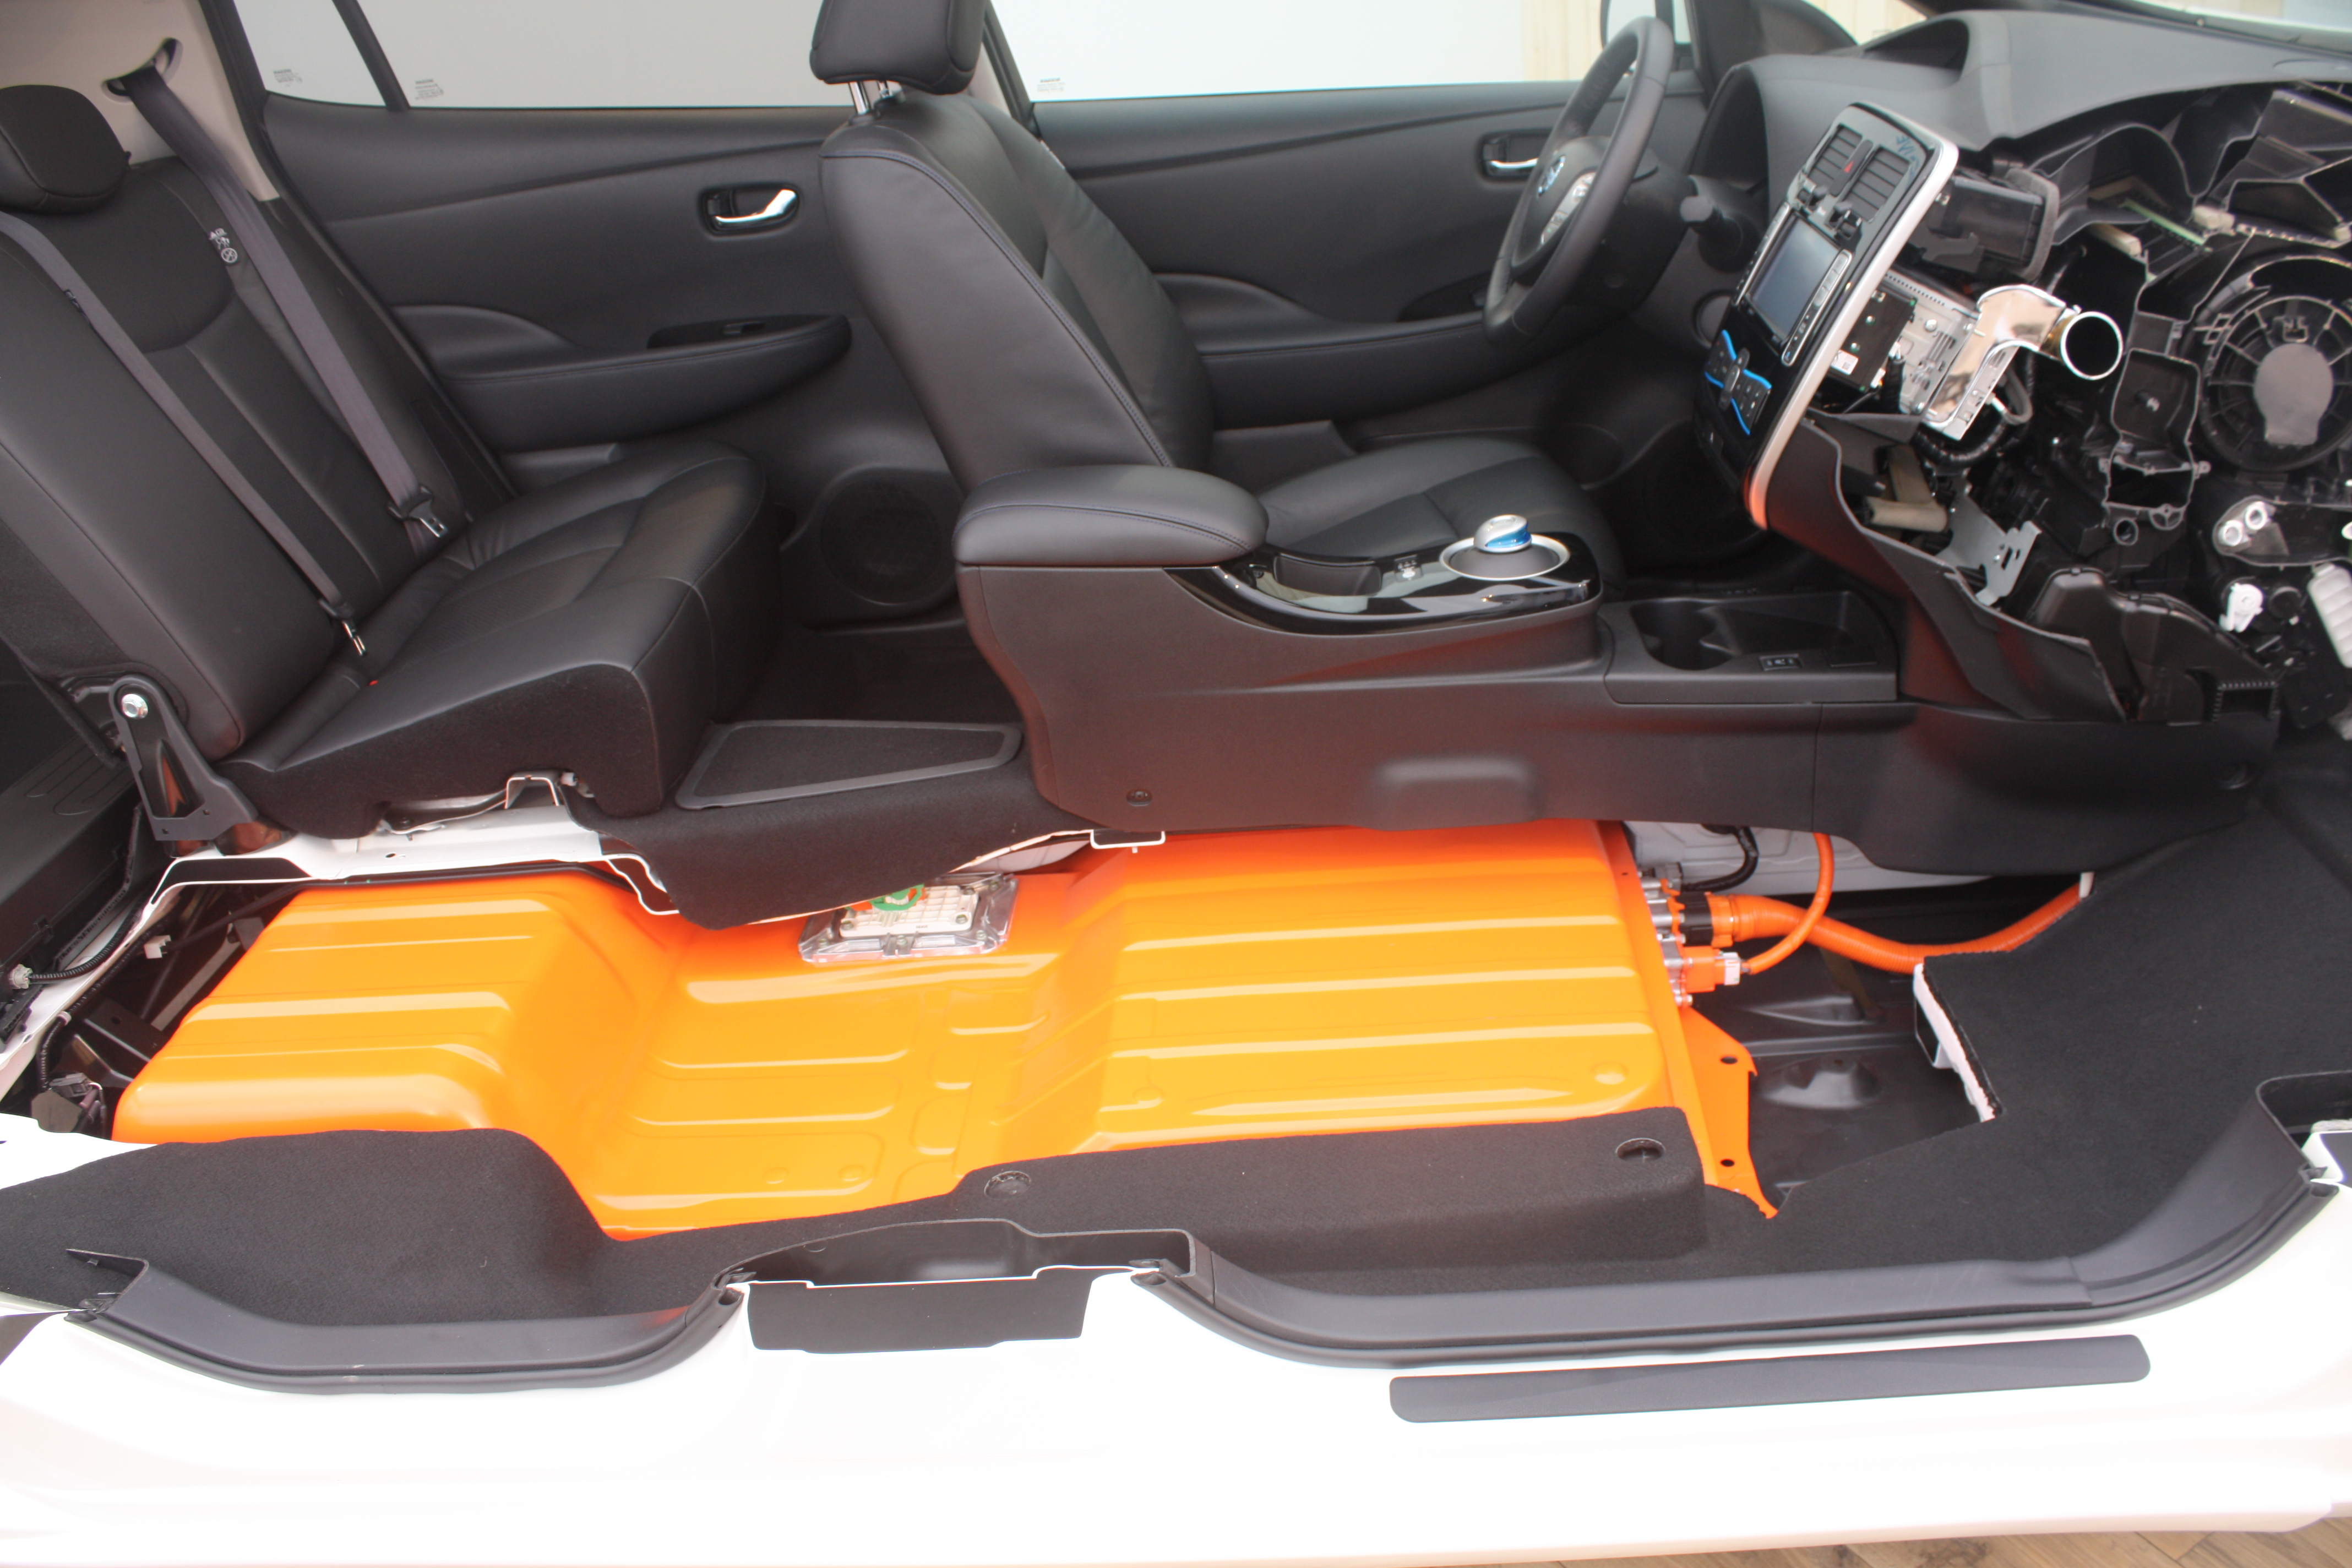 Nissan Leaf Cabin cross section exposing its Battery Pack